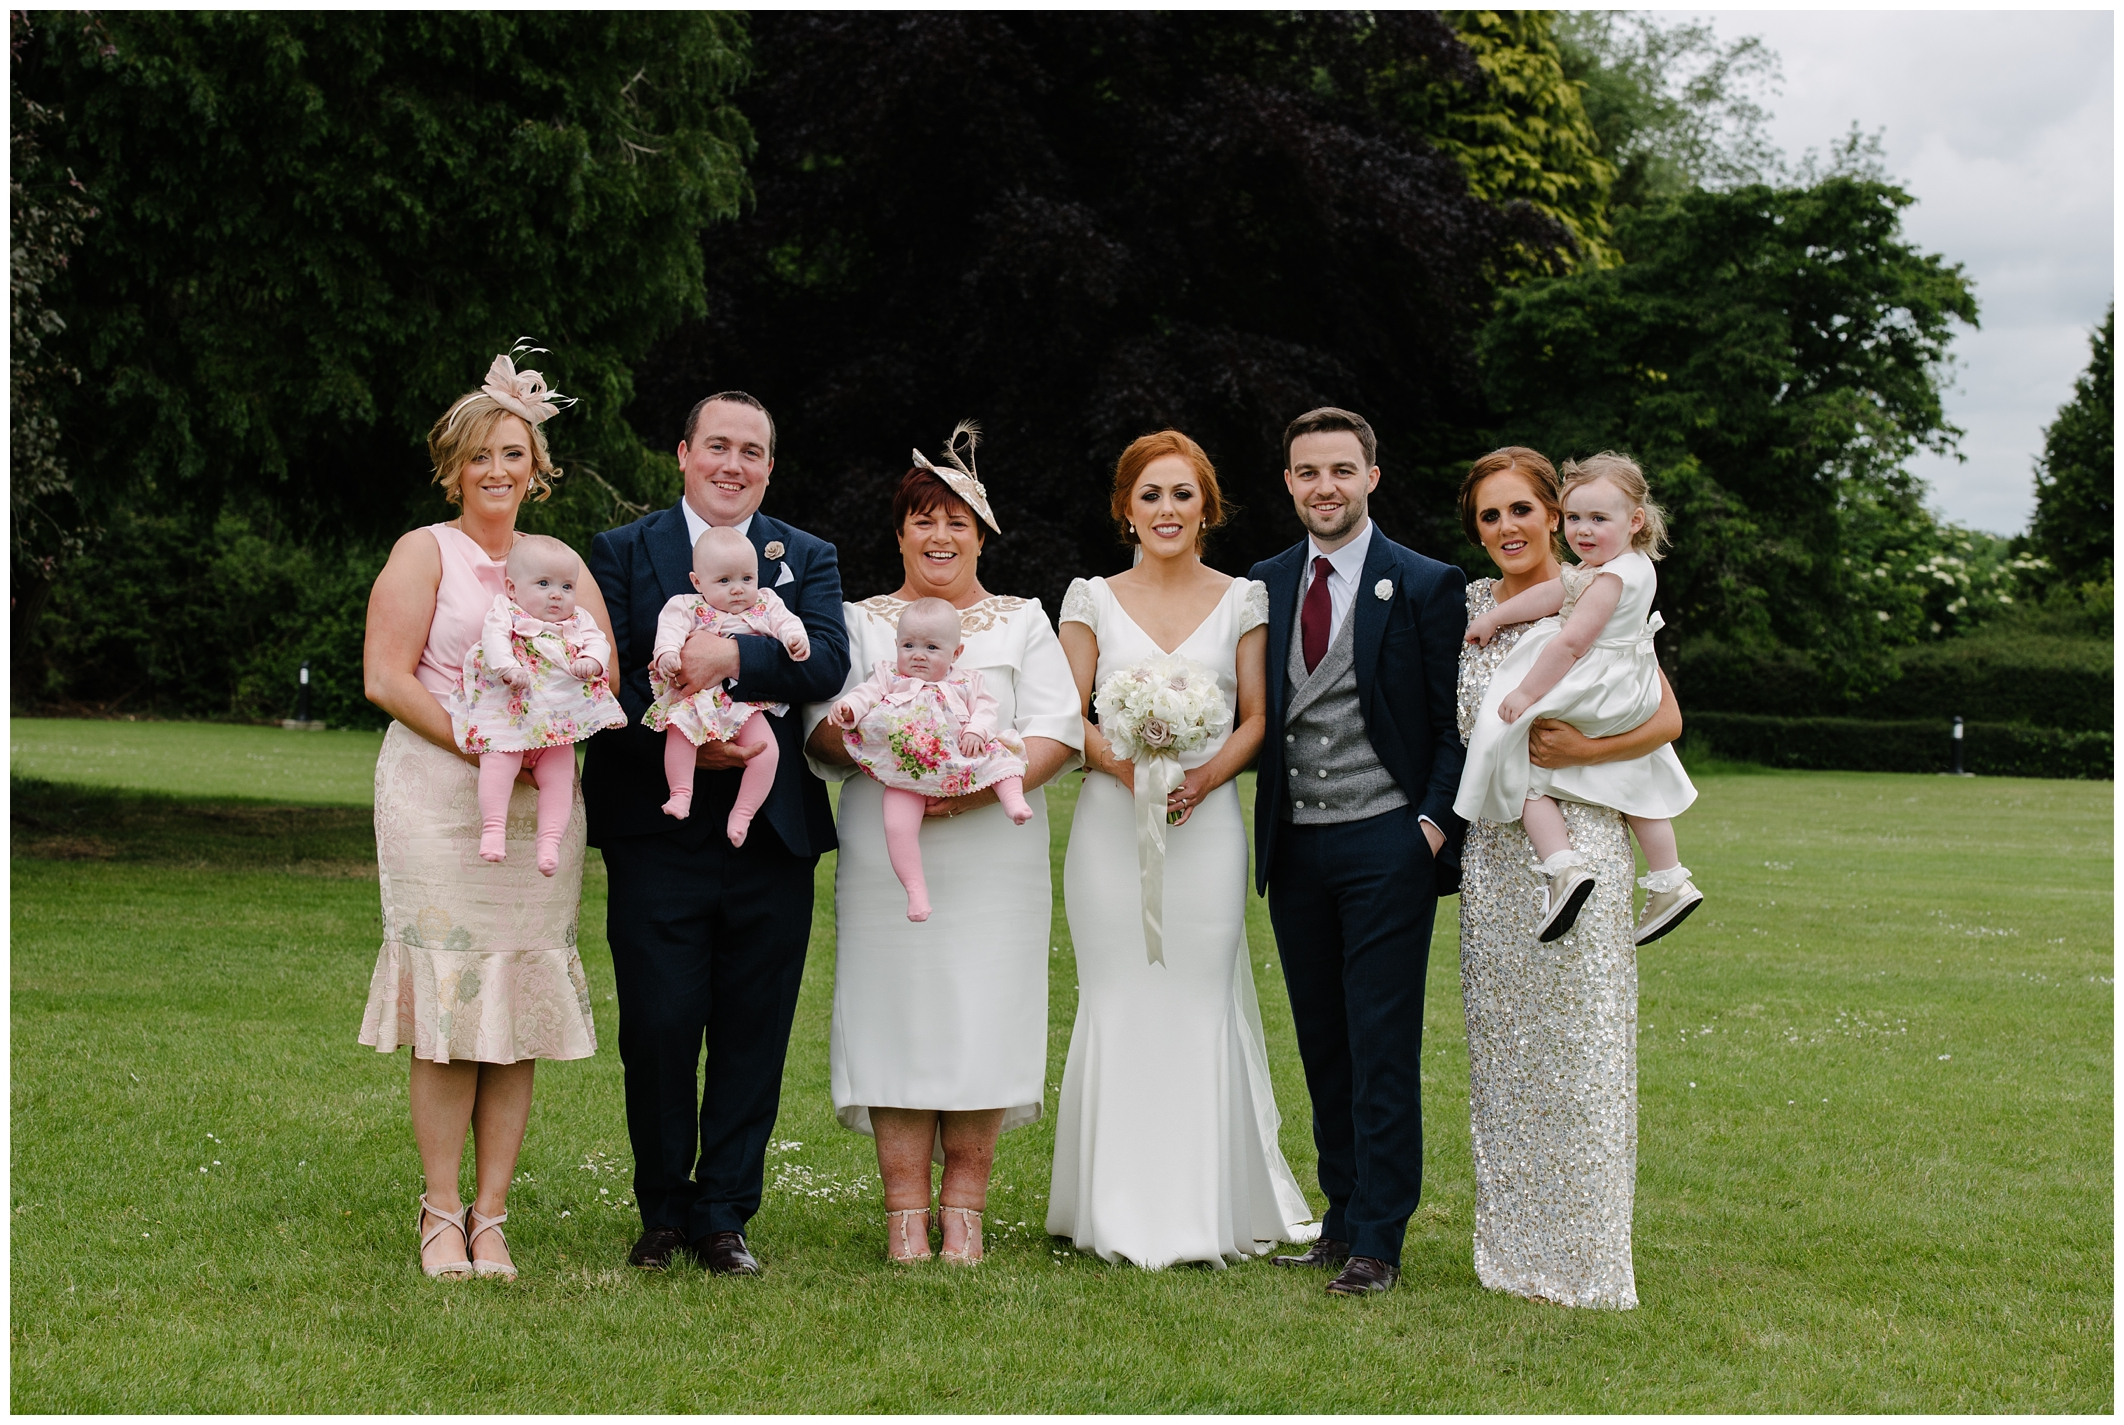 sinead_emmet_farnham_estate_wedding_jude_browne_photography_0135.jpg